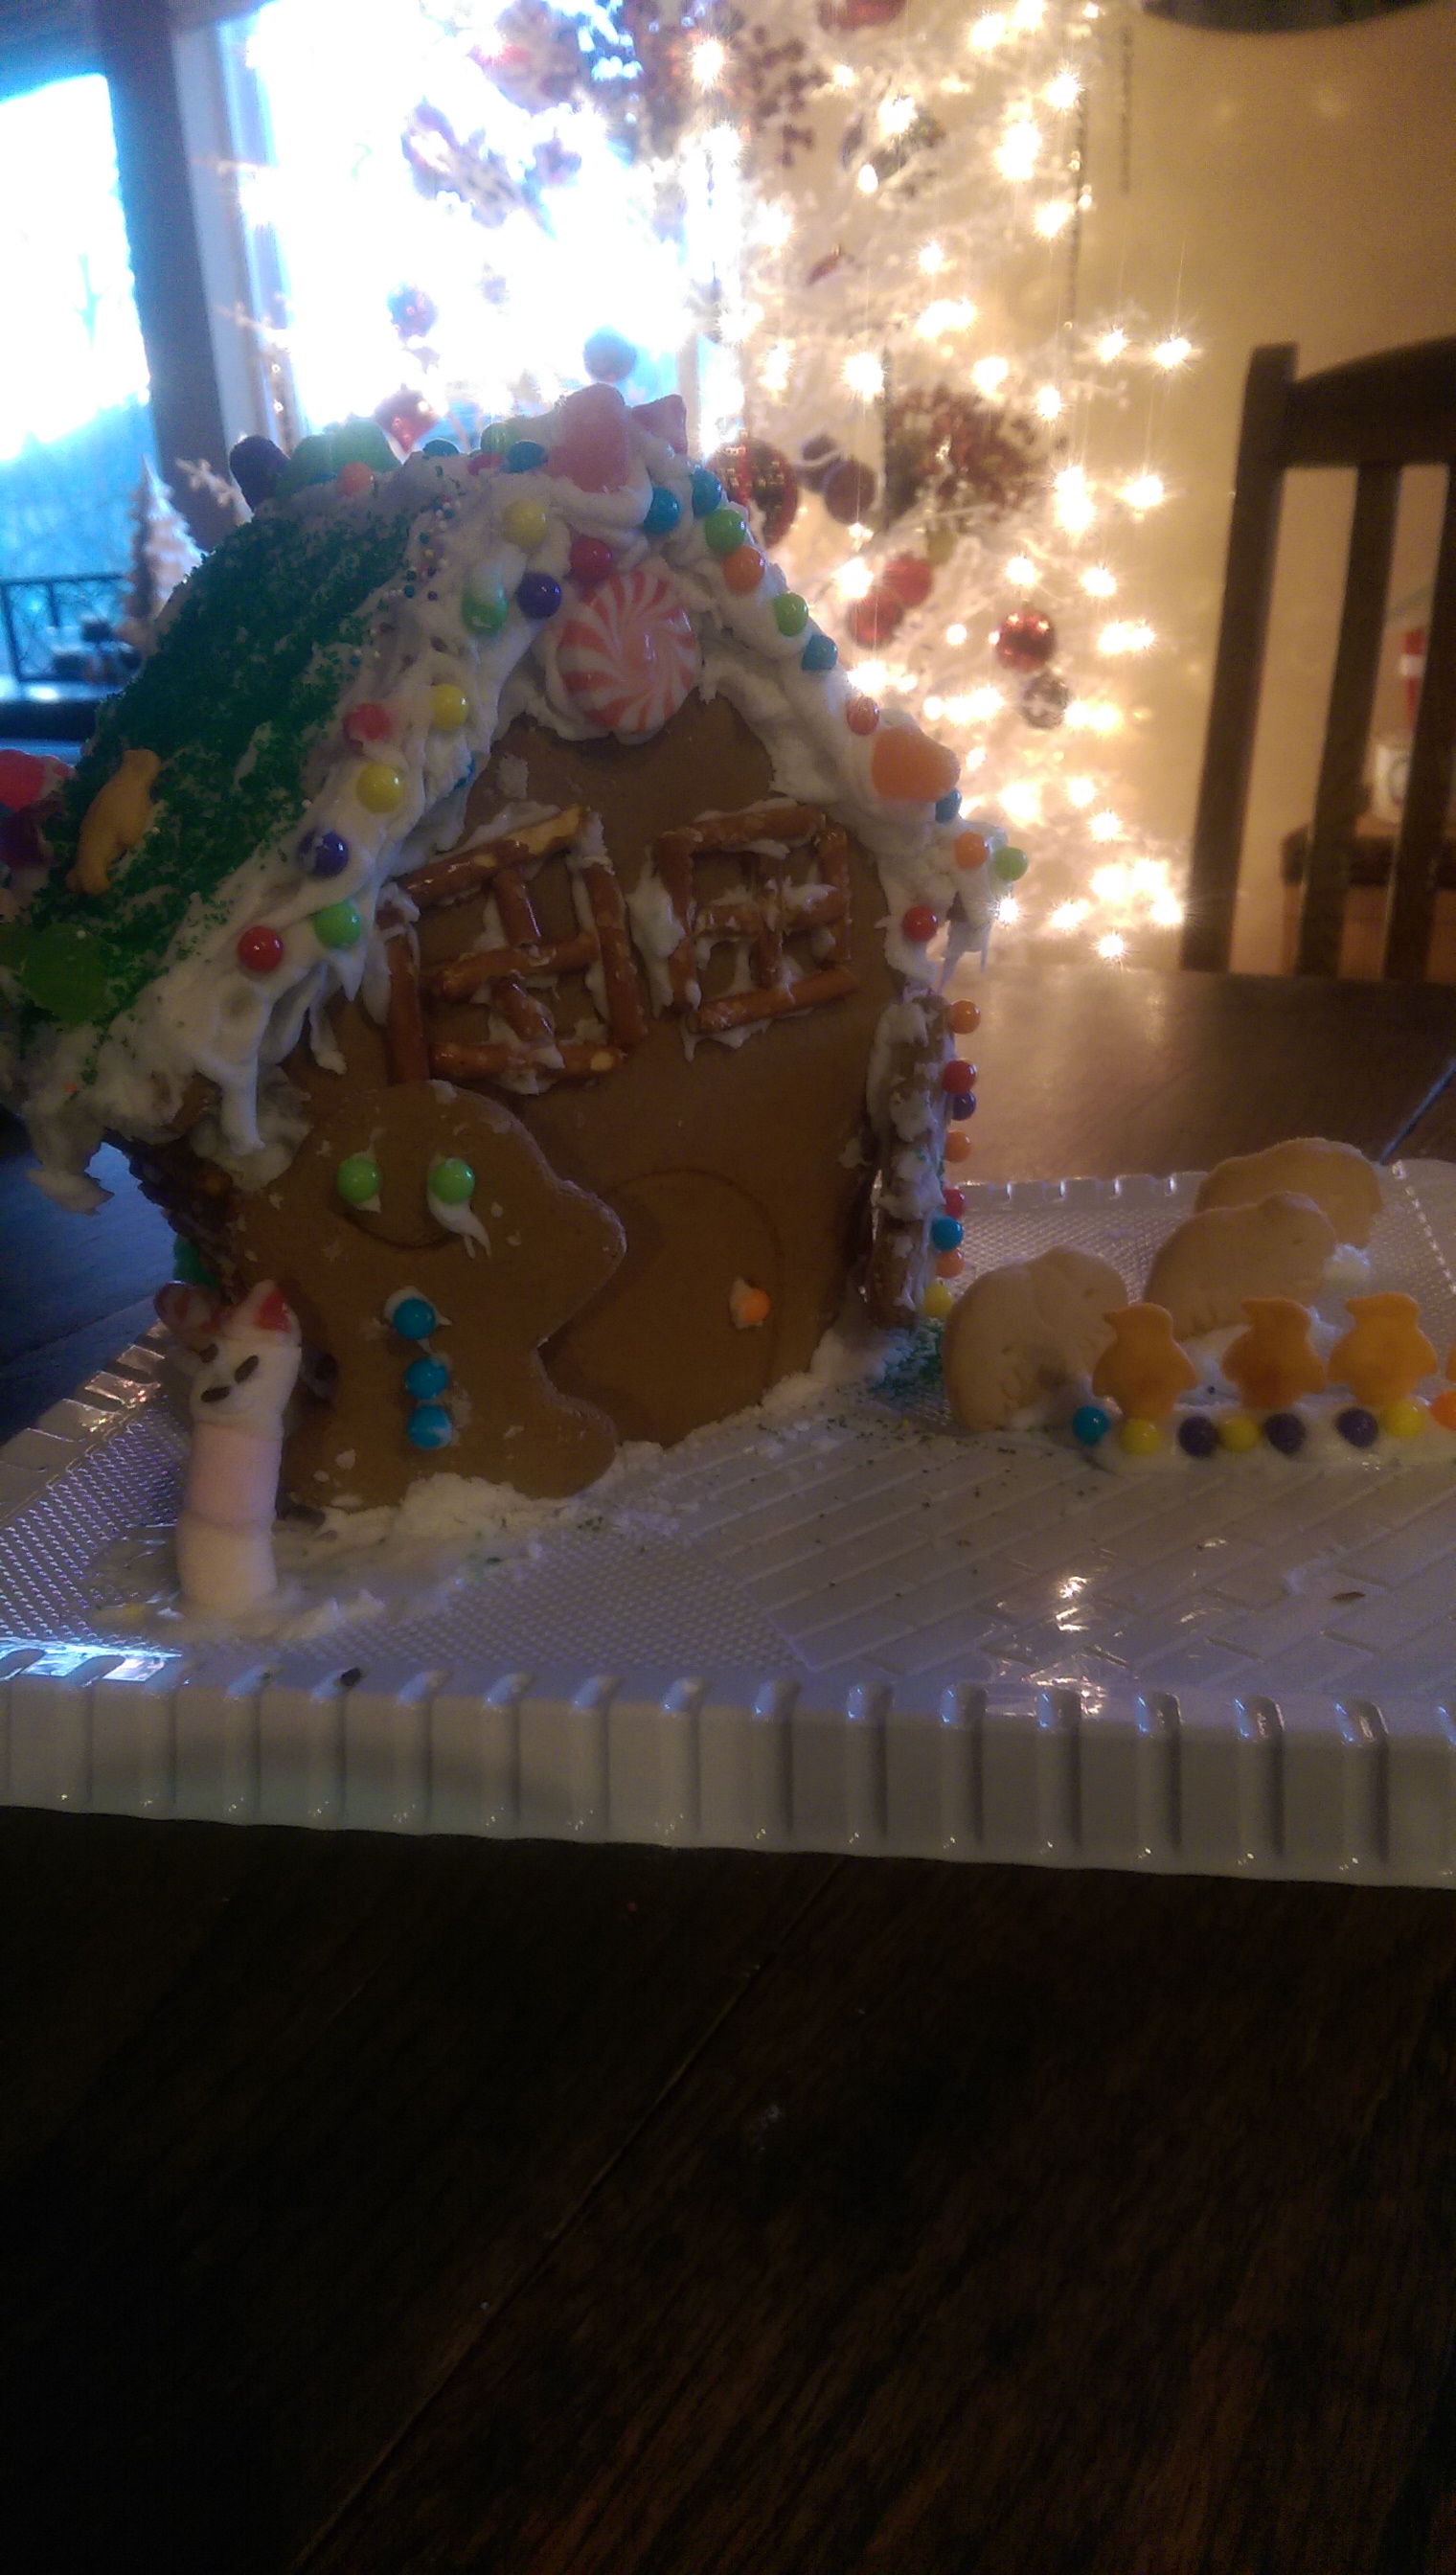 Gingerbread House and Lawn  complete with marshmallow snowman